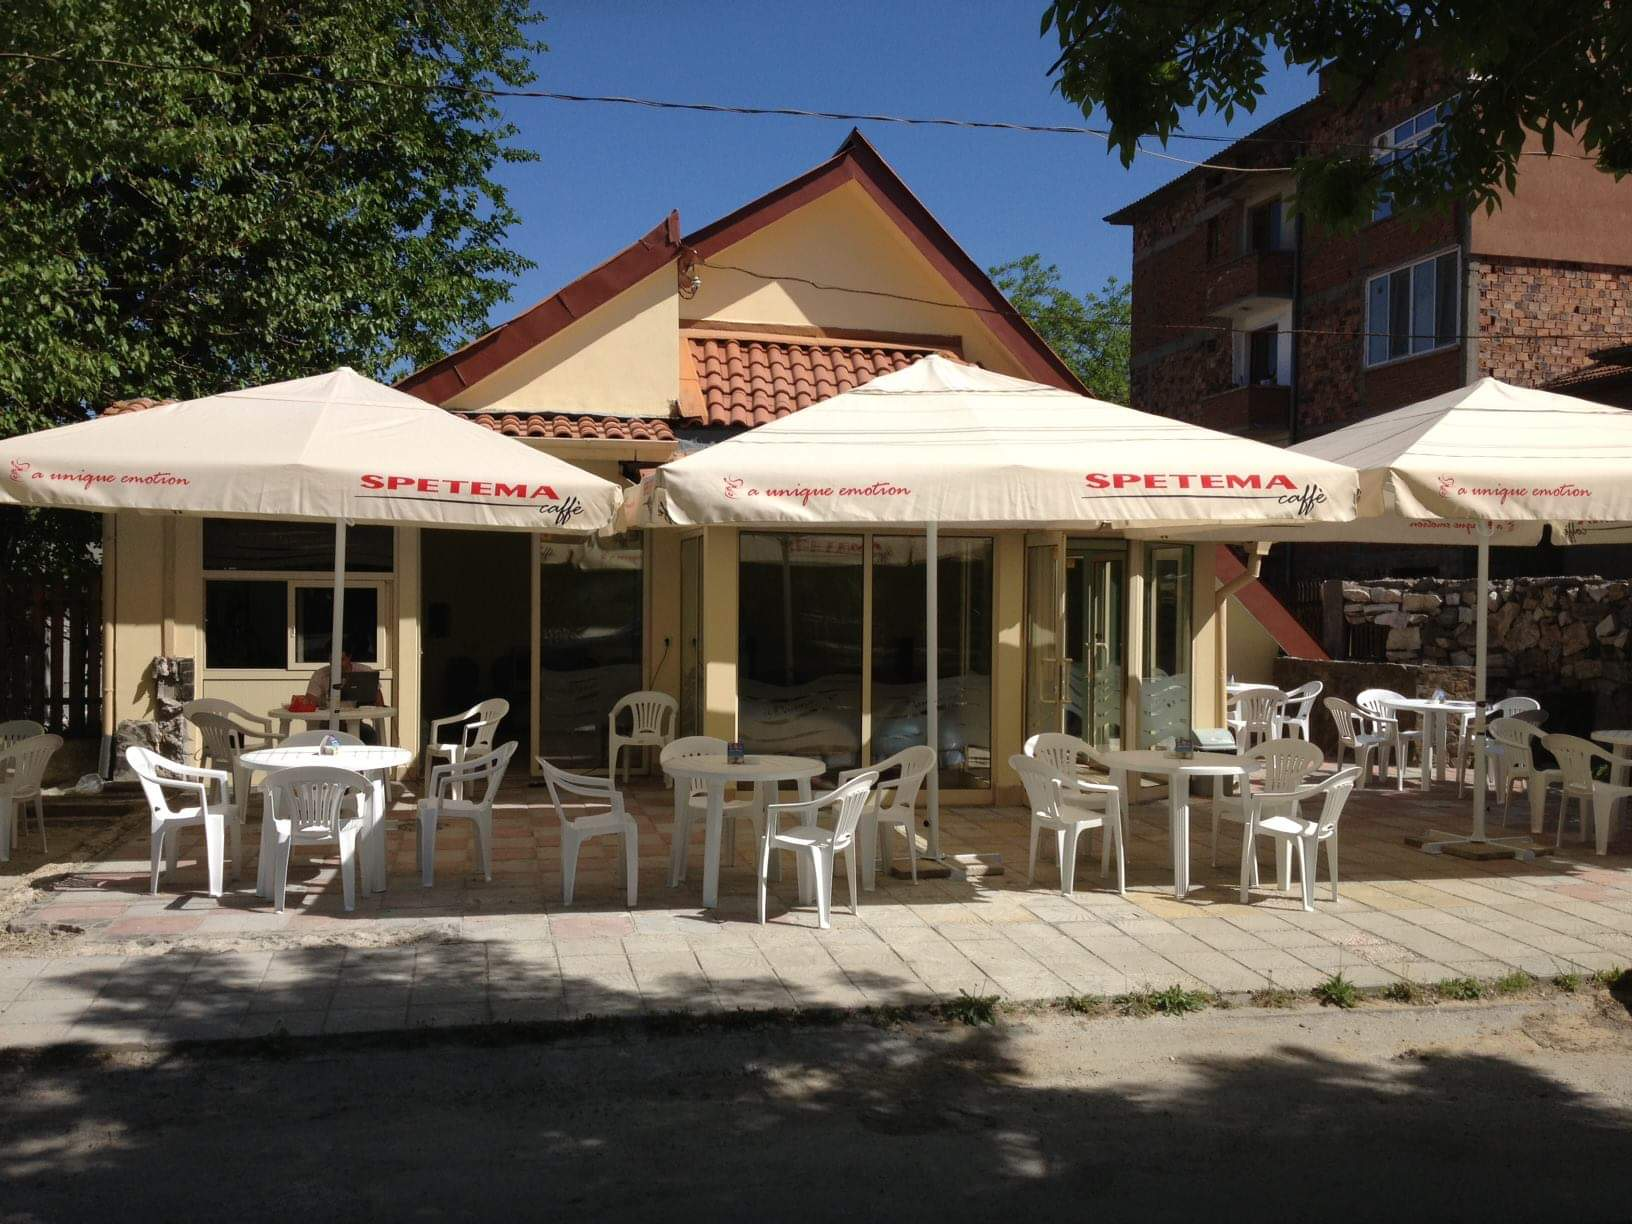 Restaurant in the town of Septemvri